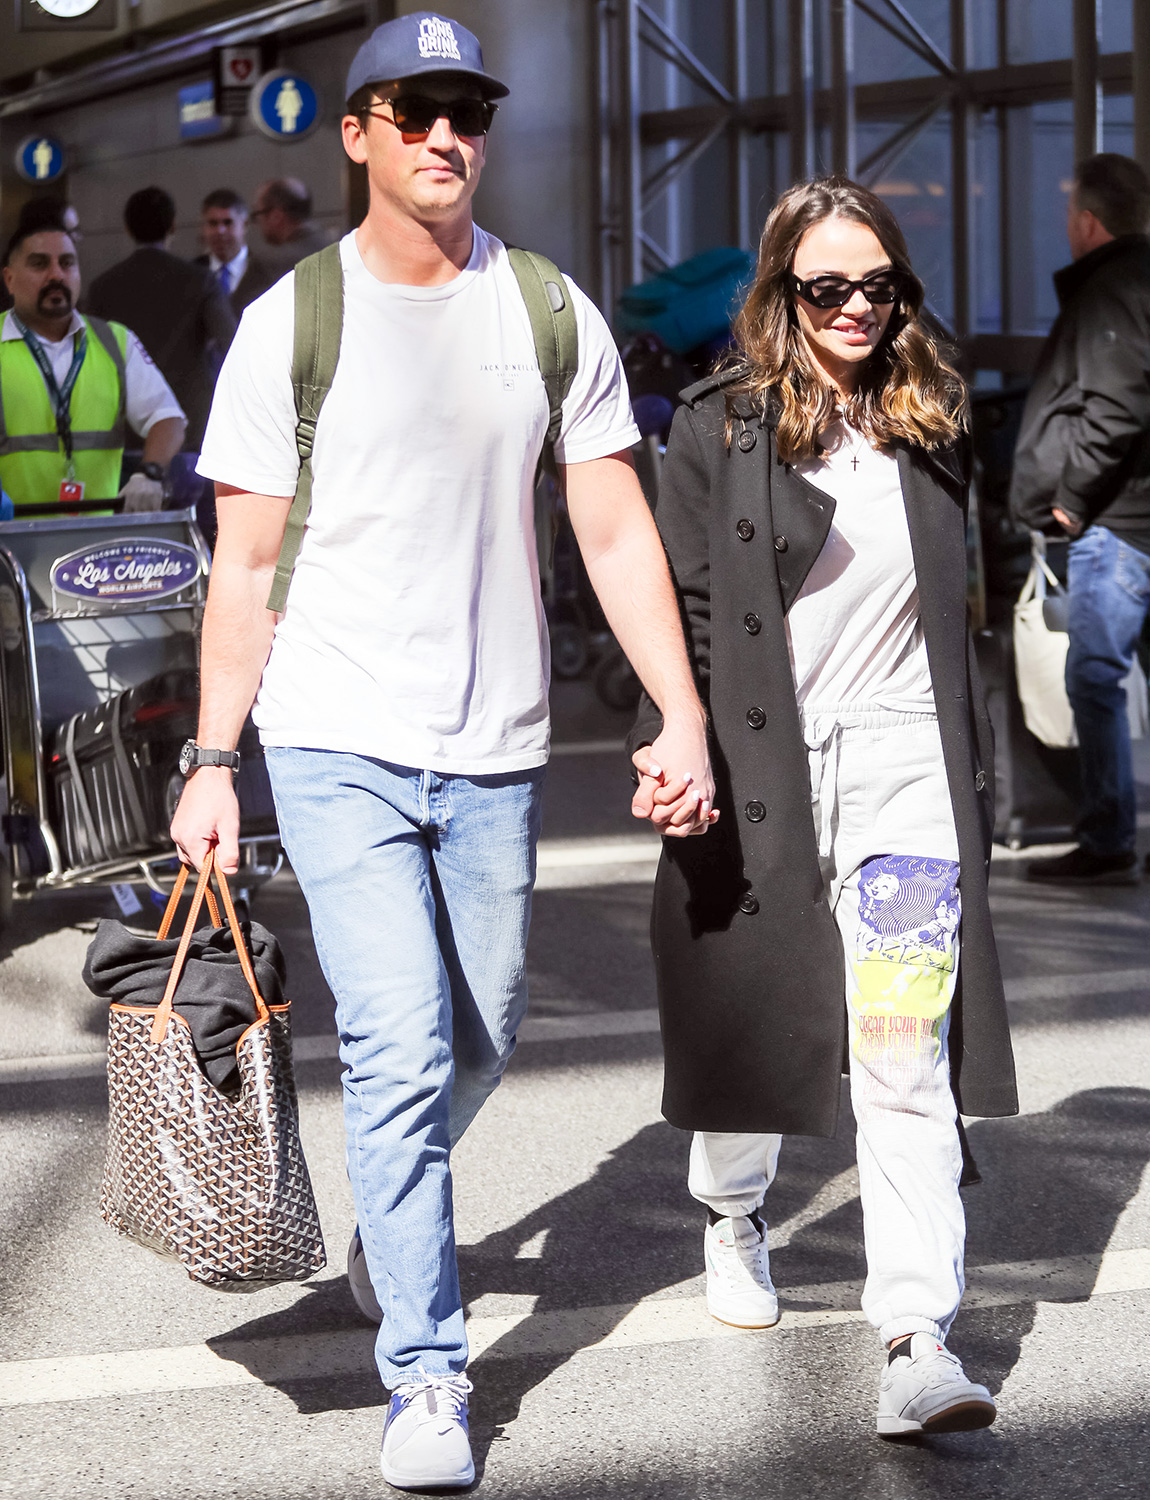 Miles Teller and Keleigh Sperry are seen at Los Angeles International Airport in Los Angeles, California